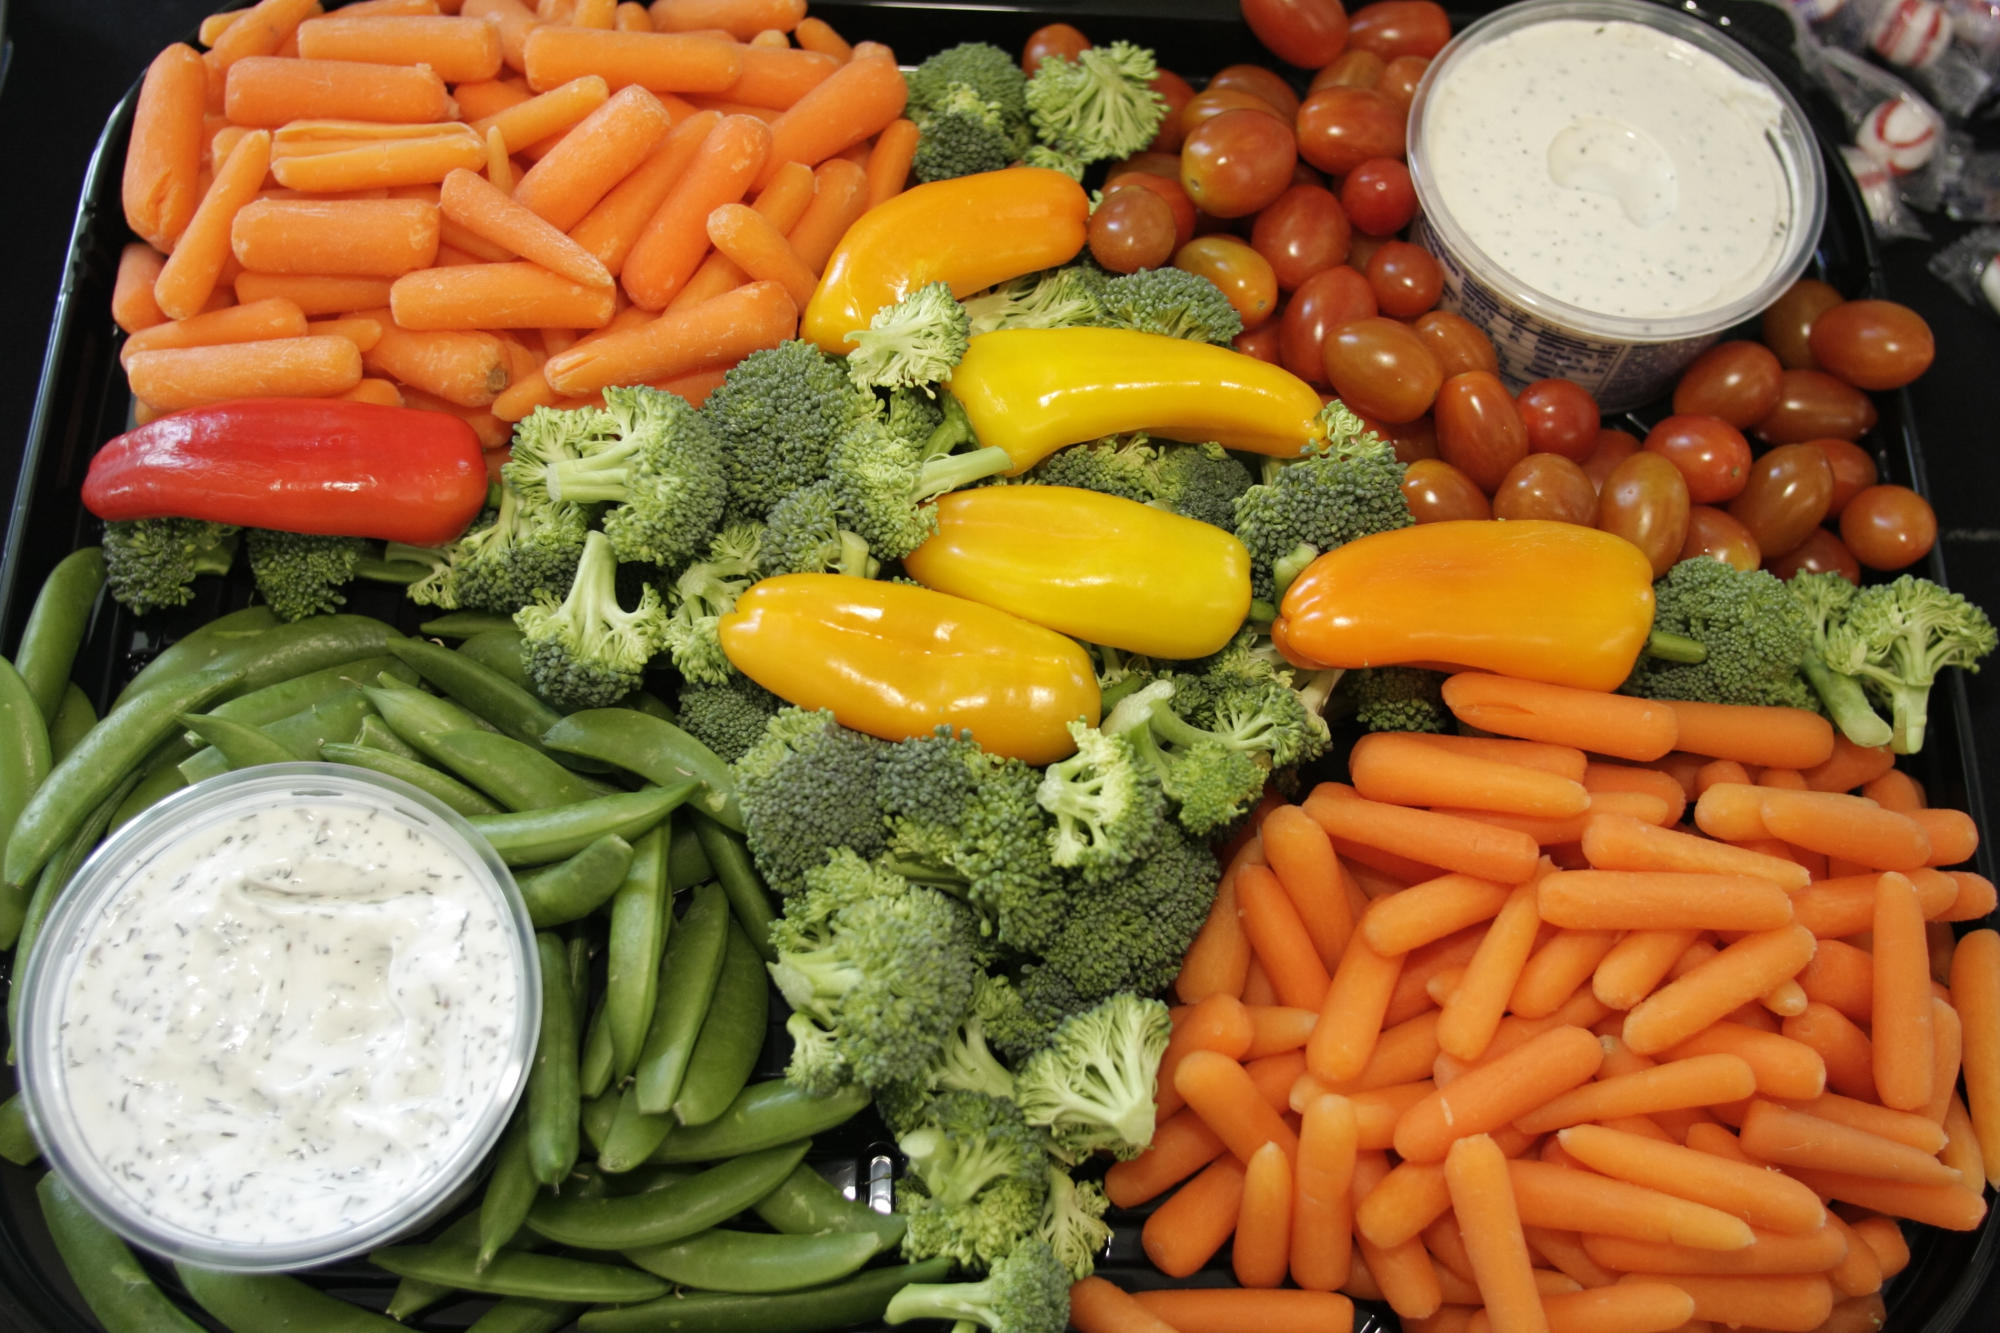 5 daily servings of fruits and vegetables can help you live longer, study finds - Yahoo Lifestyle